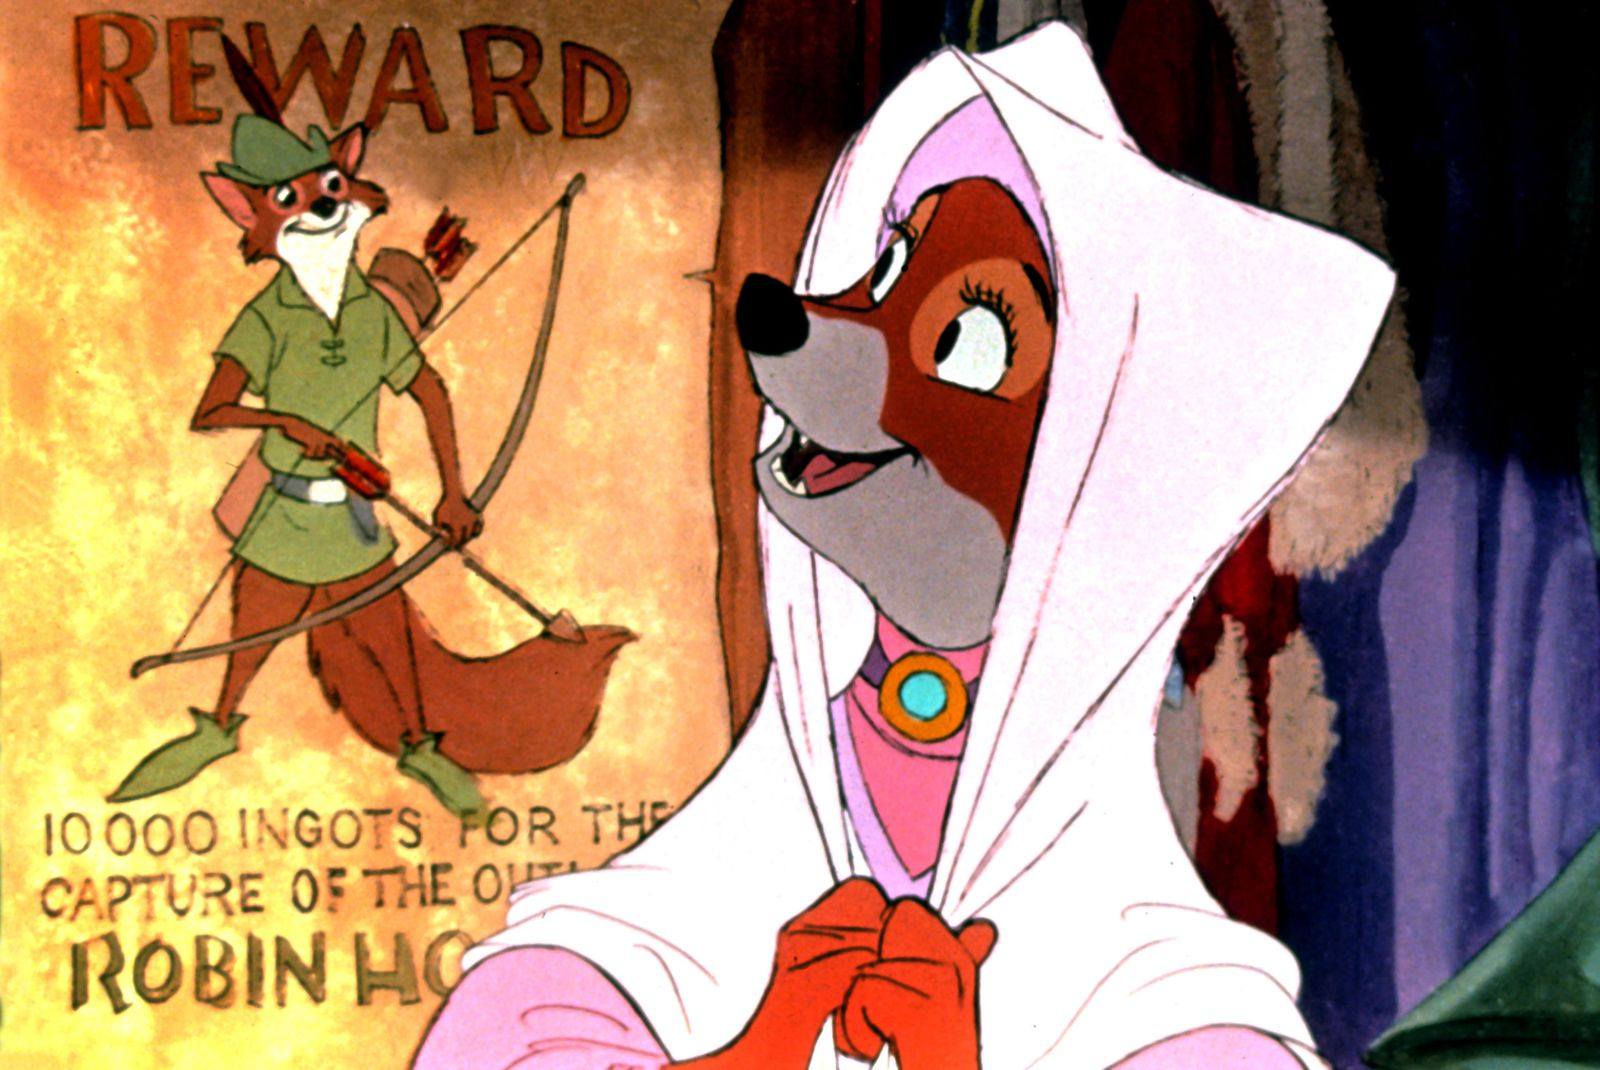 Robin des Bois Robin Hood 1973 real Wolfgang Reitherman Walt Disney COLLECTION CHRISTOPHEL